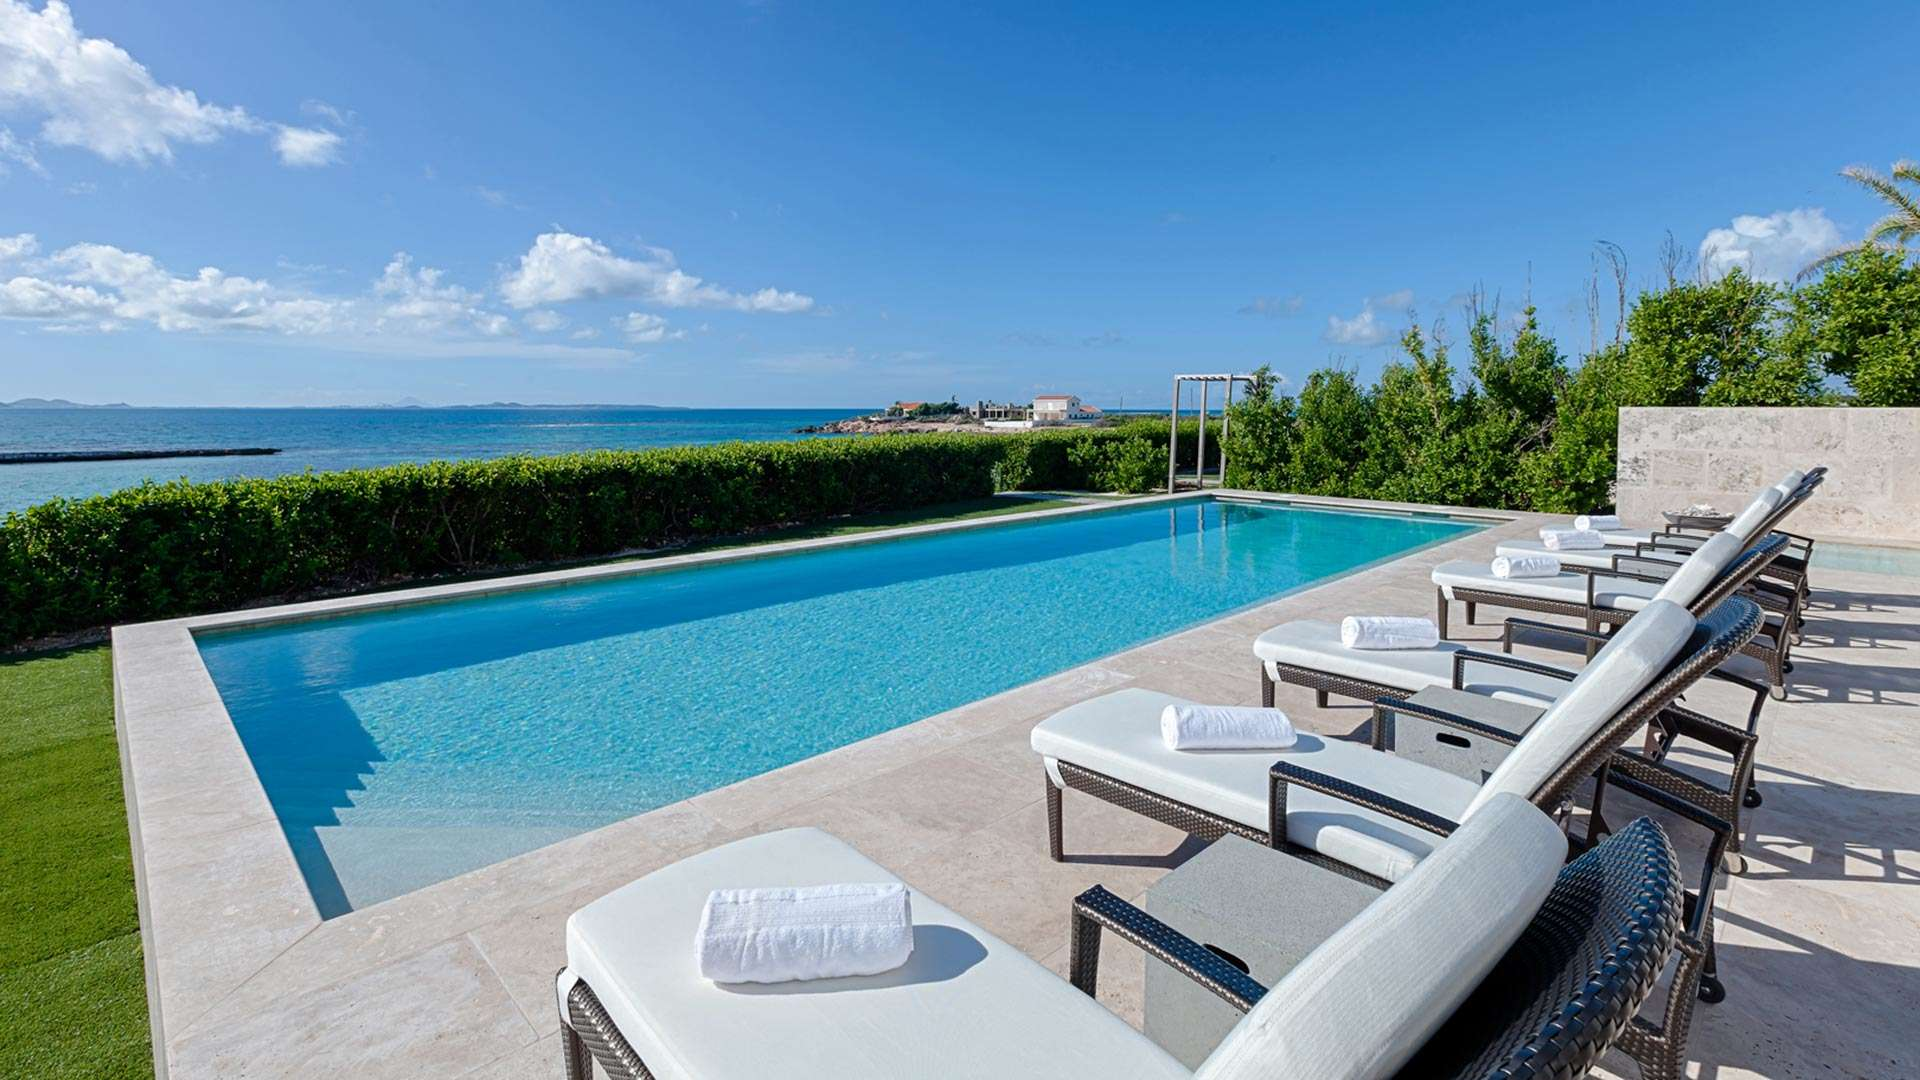 Luxury villa rentals caribbean - Anguilla - Blowing point - No location 4 - Beaches Edge Villa - Image 1/14